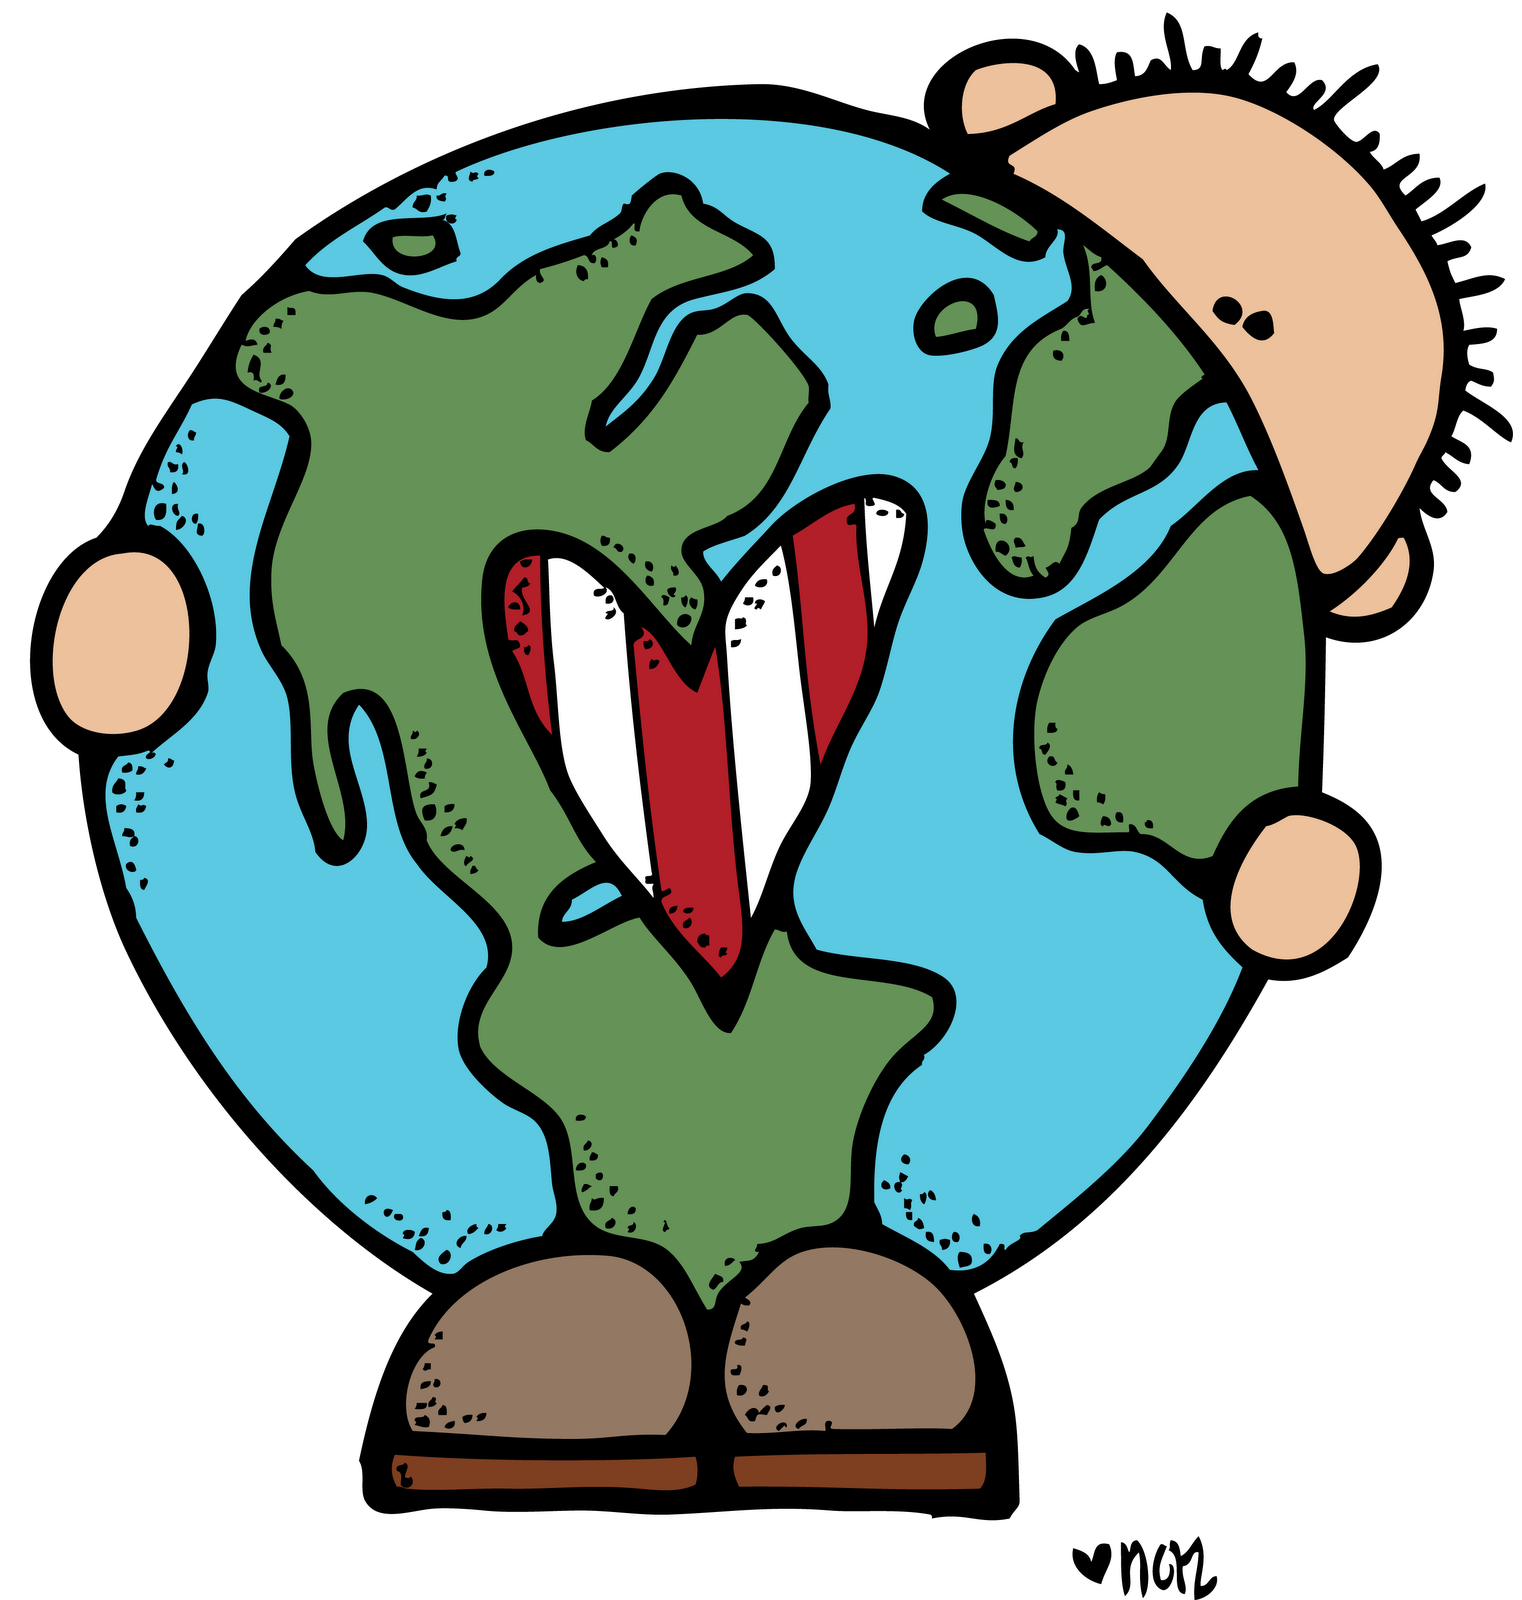 Planet clipart melonheadz. Earth day images